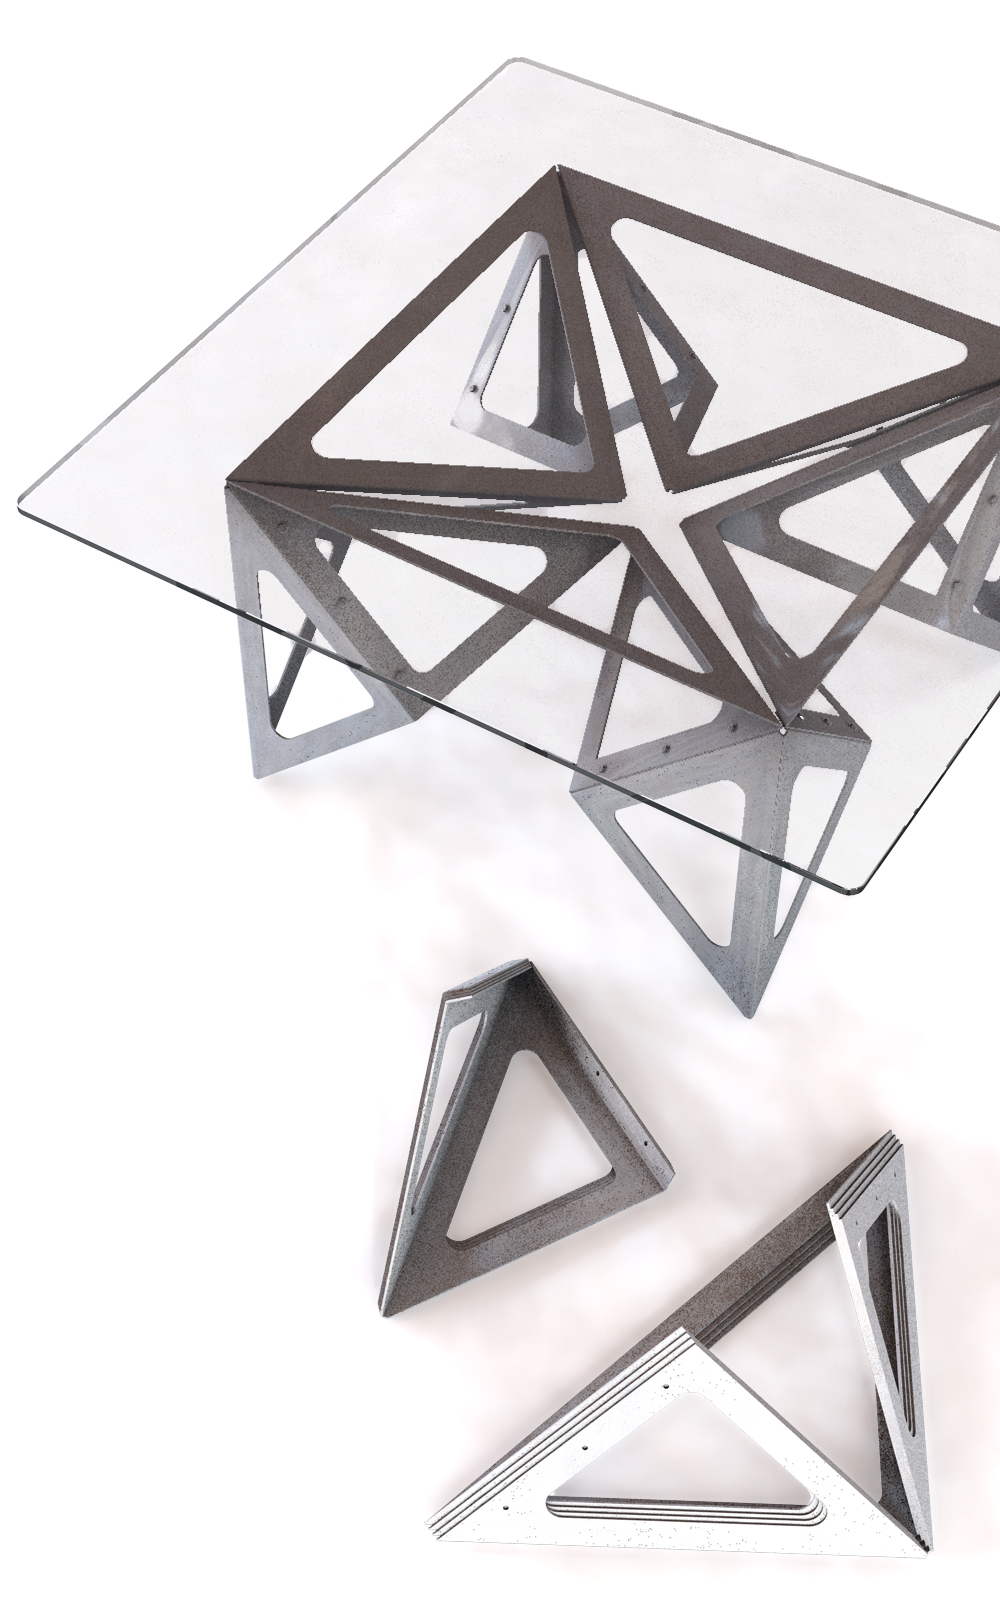 Coin-coin, la table inspirée de l'origami